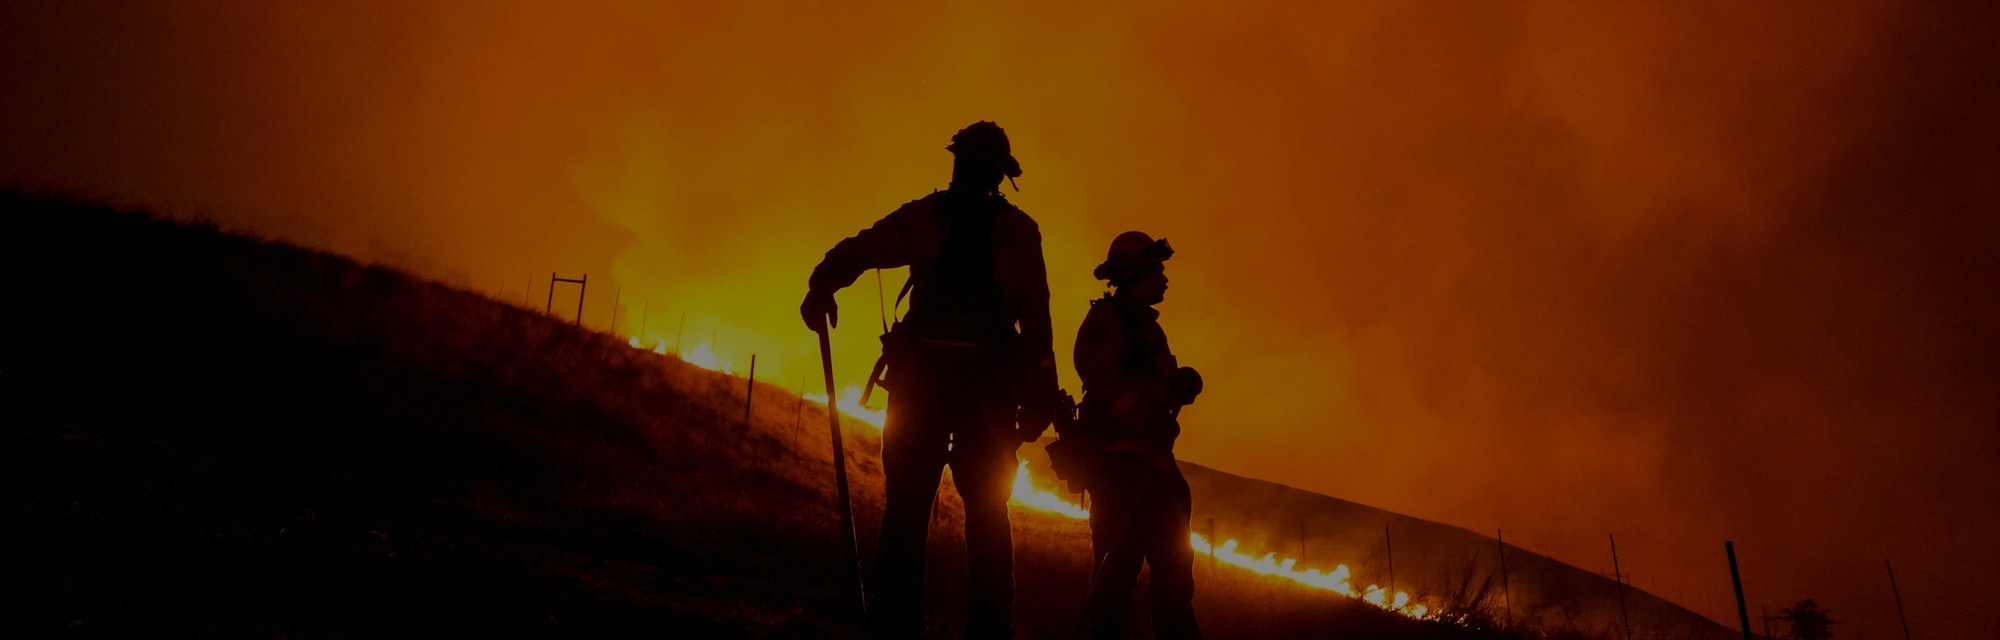 Two firefighters can be seen amid wildfires in California.